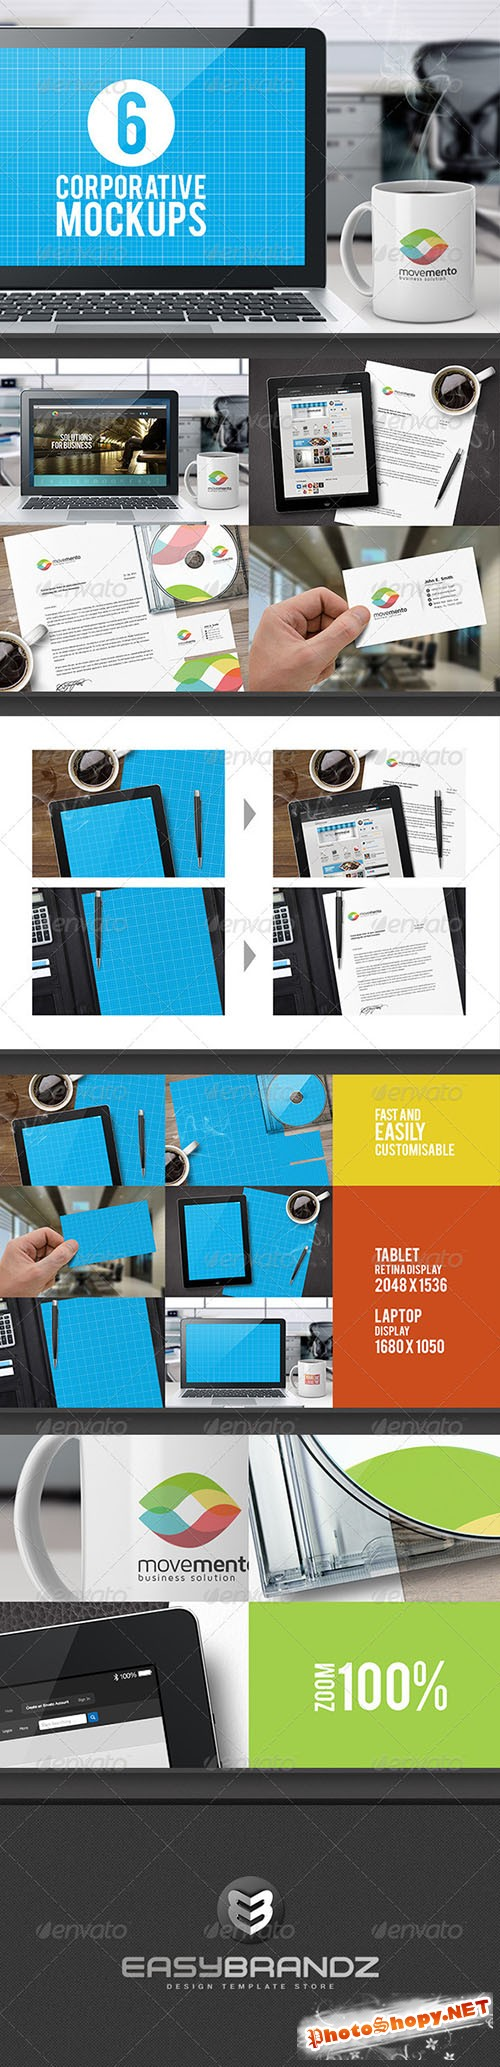 GraphicRiver - Corporative Mockups Vol.01 - 5810997